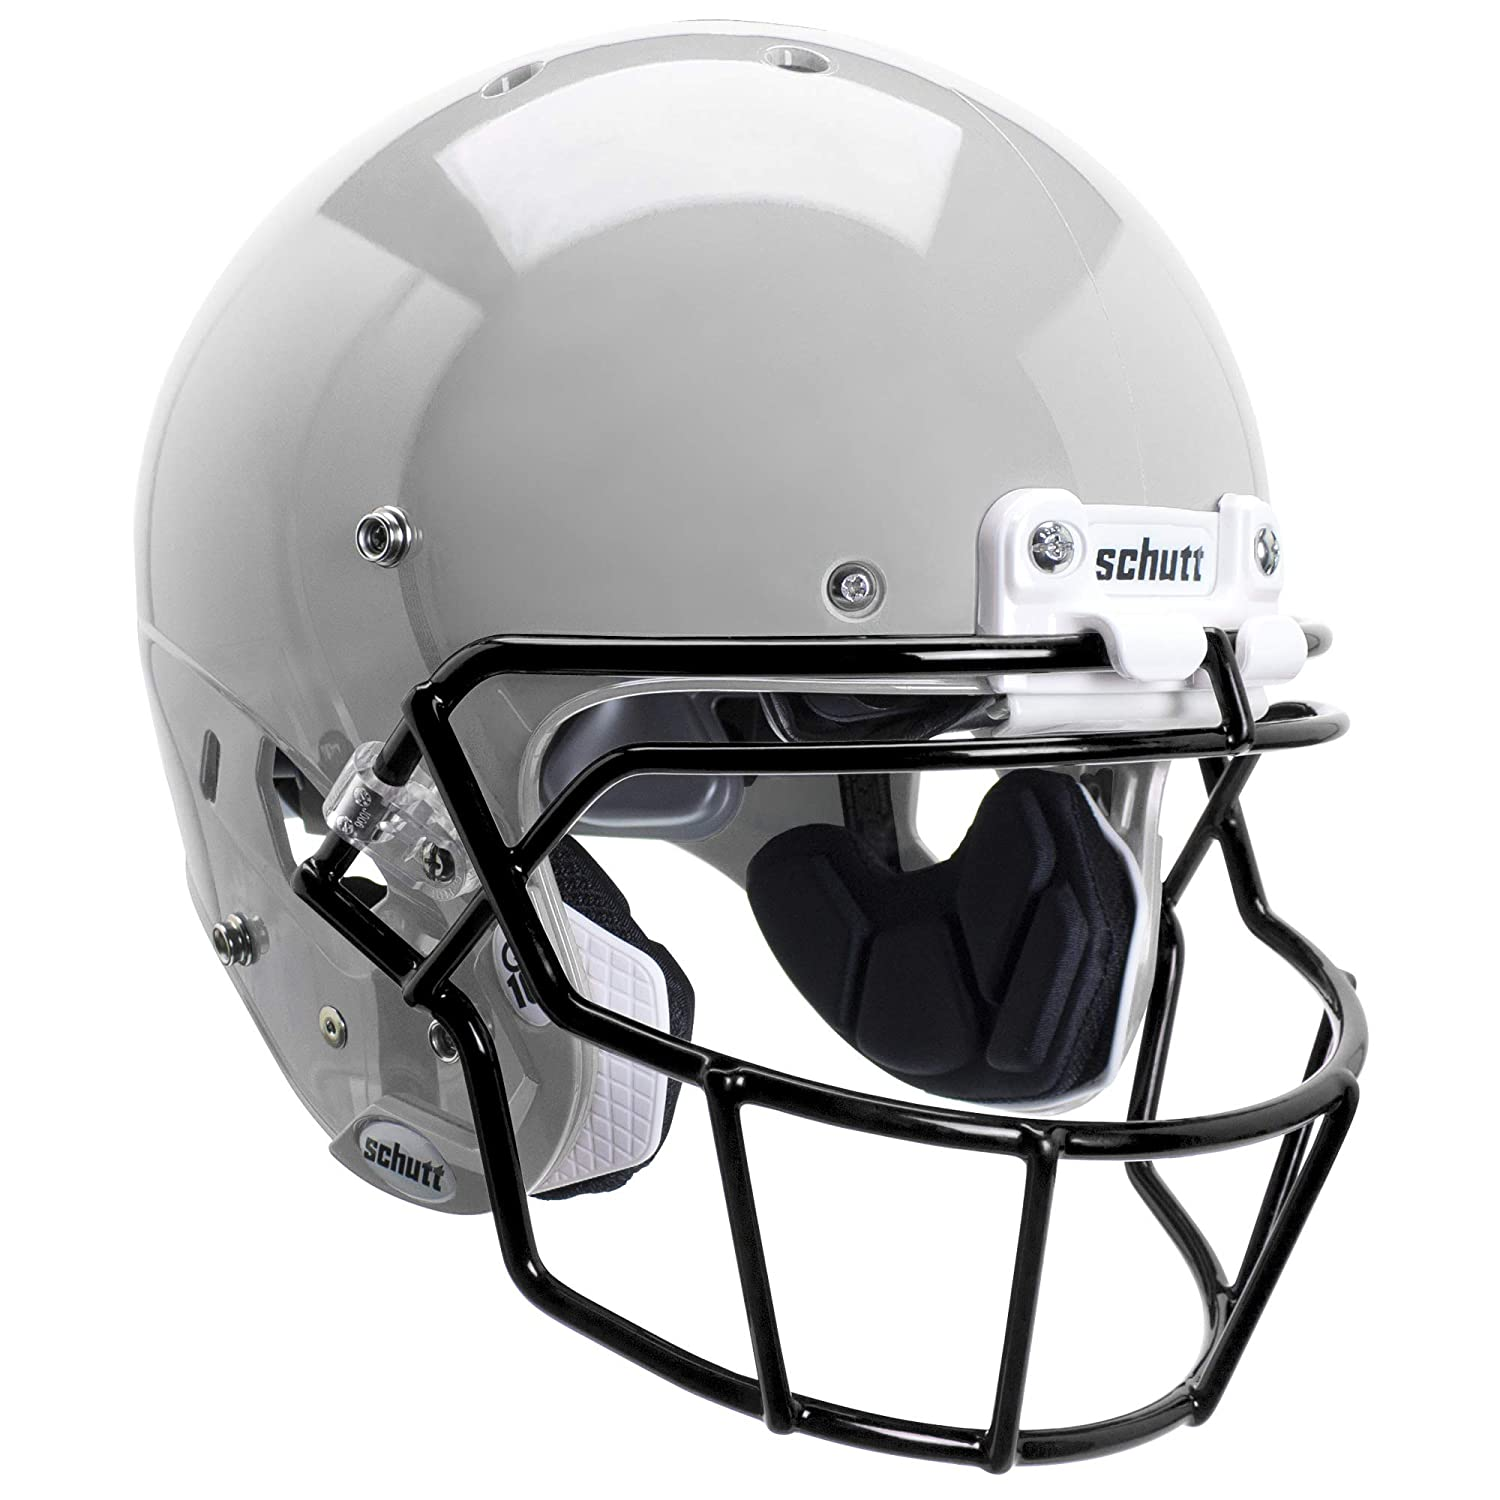 Schutt Sports FB Air XpPro Q10 Spms Helmet with Stabilizers 7889004275-Parent